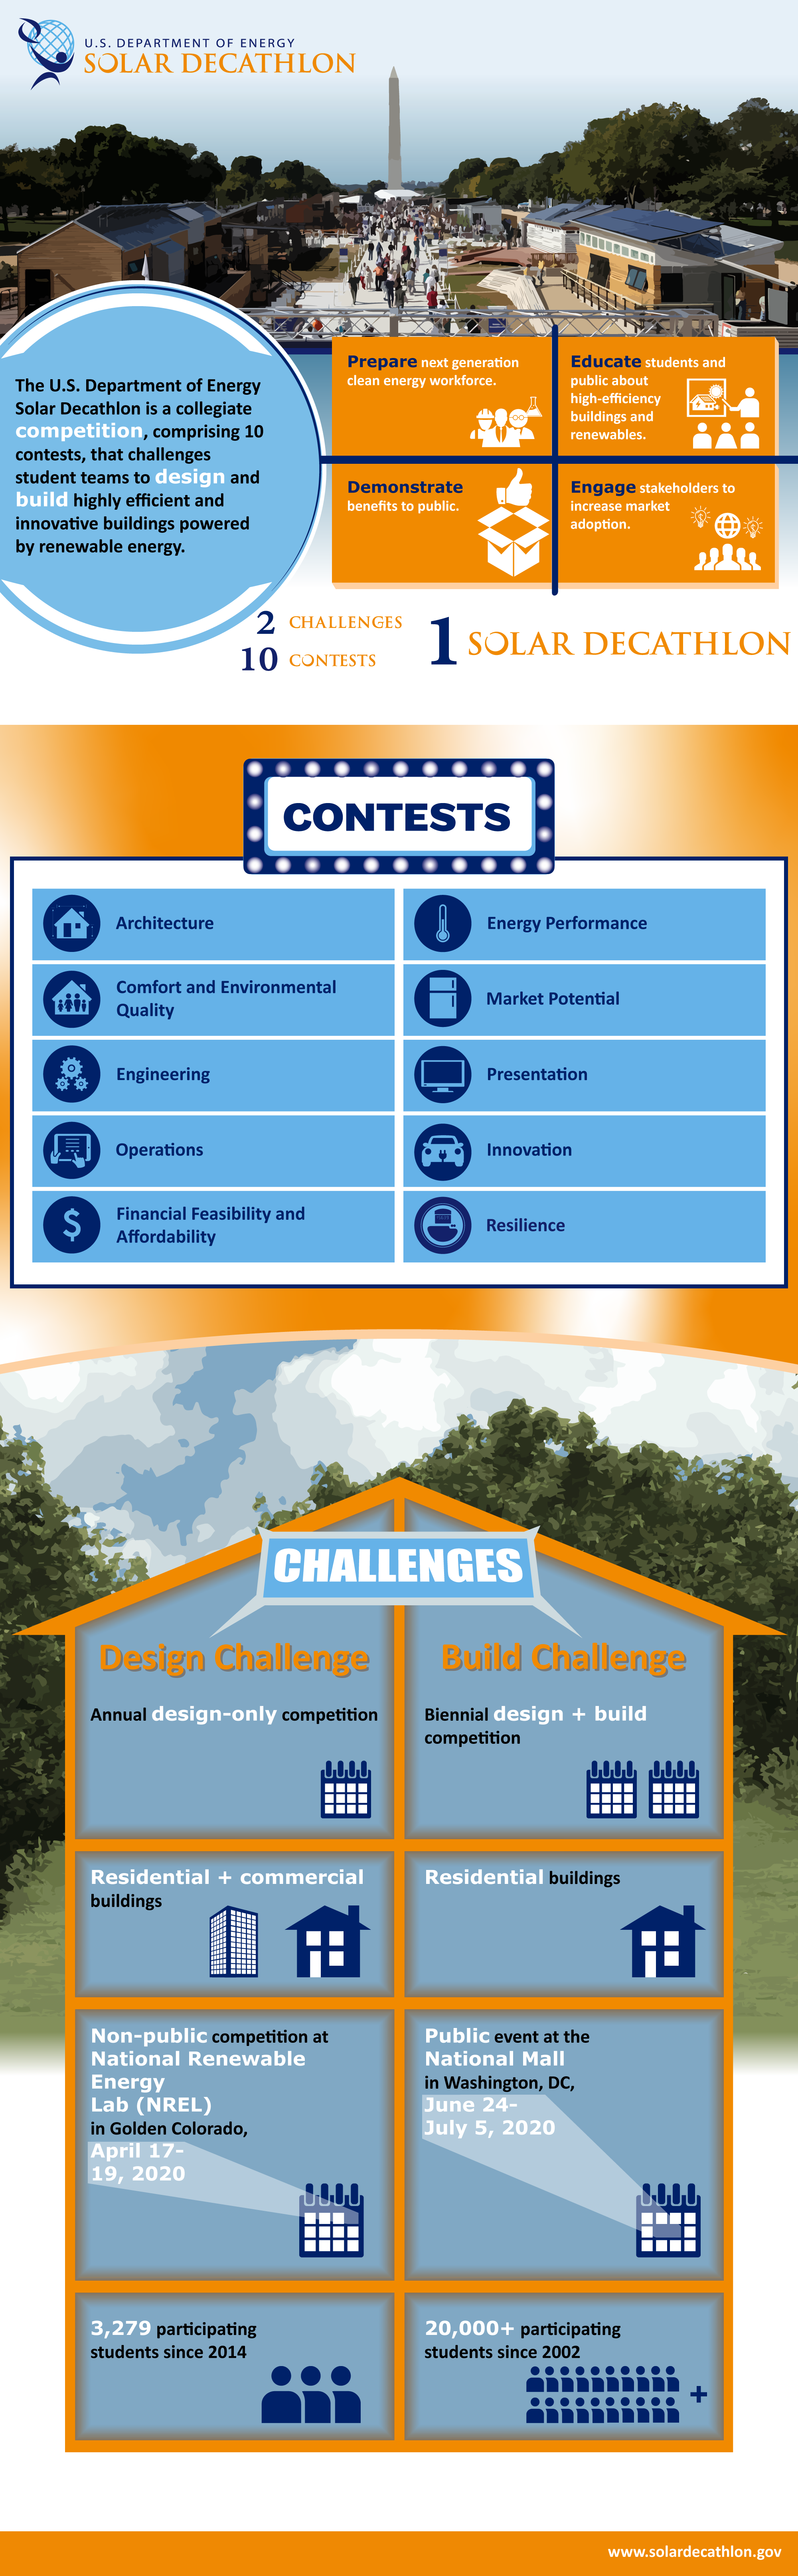 "A three-pane infographic. The first section says: ""The U.S. Department of Energy Solar Decathlon is a collegiate competition, comprising 10 contents, that challenges student teams to design and build highly efficient and innovative buildings powered by renewable energy. Prepare the next generation clean energy workforce. Education the students and public about high efficiency buildings and renewables. Demonstrate benefits to public. Engage stakeholders to increase market adoption. 2 Challenges. 10 contents. 1 Solar Decathlon. The next pane lists the 10 contests: Architecture. Comfort and environmental quality, engineering, operations, financial feasibility and affordability, energy performance, market potential, presentation, innovation, resilience. The last page compares the 2 challenges. The Design Challenge is an annual design only competition with residential and commercial buildings. This is a non-public competition at the National Renewables energy lab in Golden Colorado (April 17-19, 2020). 3,279 students have participated since 2014. The Build Challenge is biennial design and build competition for residential buildings only. It is a public event at the nation Mall in Washington DC (June 24-July5, 2020). Over 20,000 students have participated since 2002."